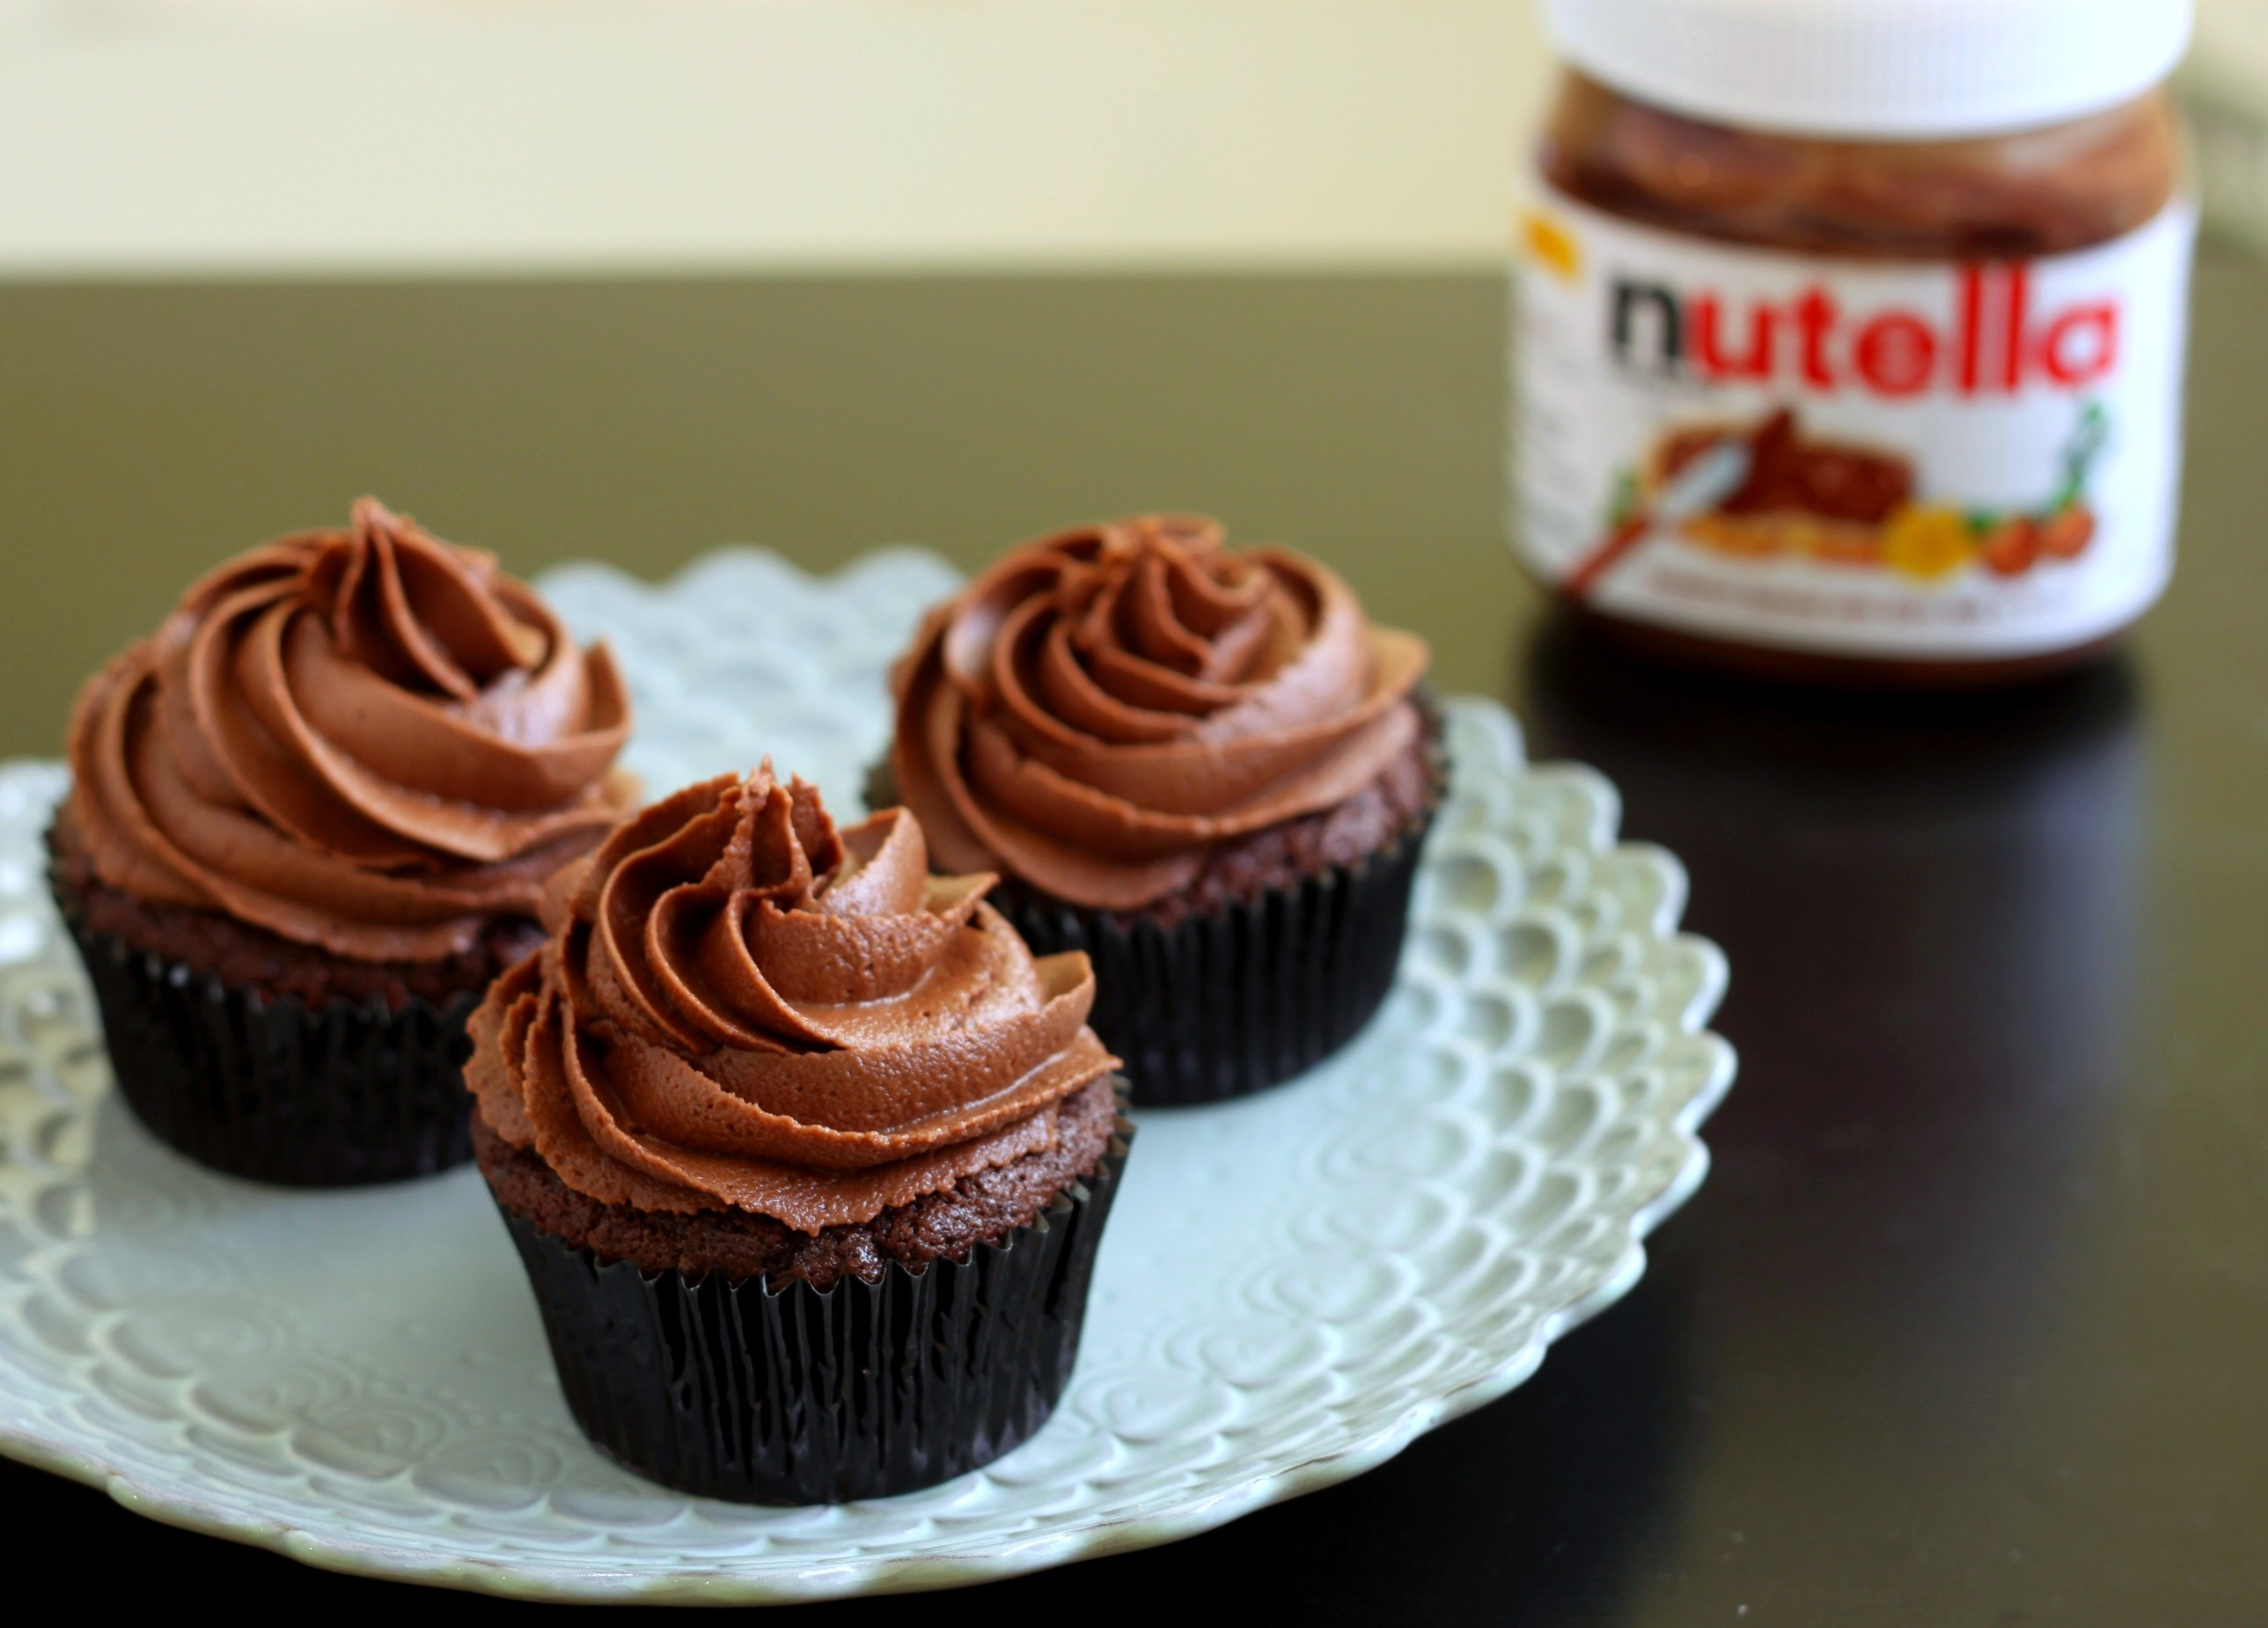 Chocolate Orange Nutella Cake Recipe